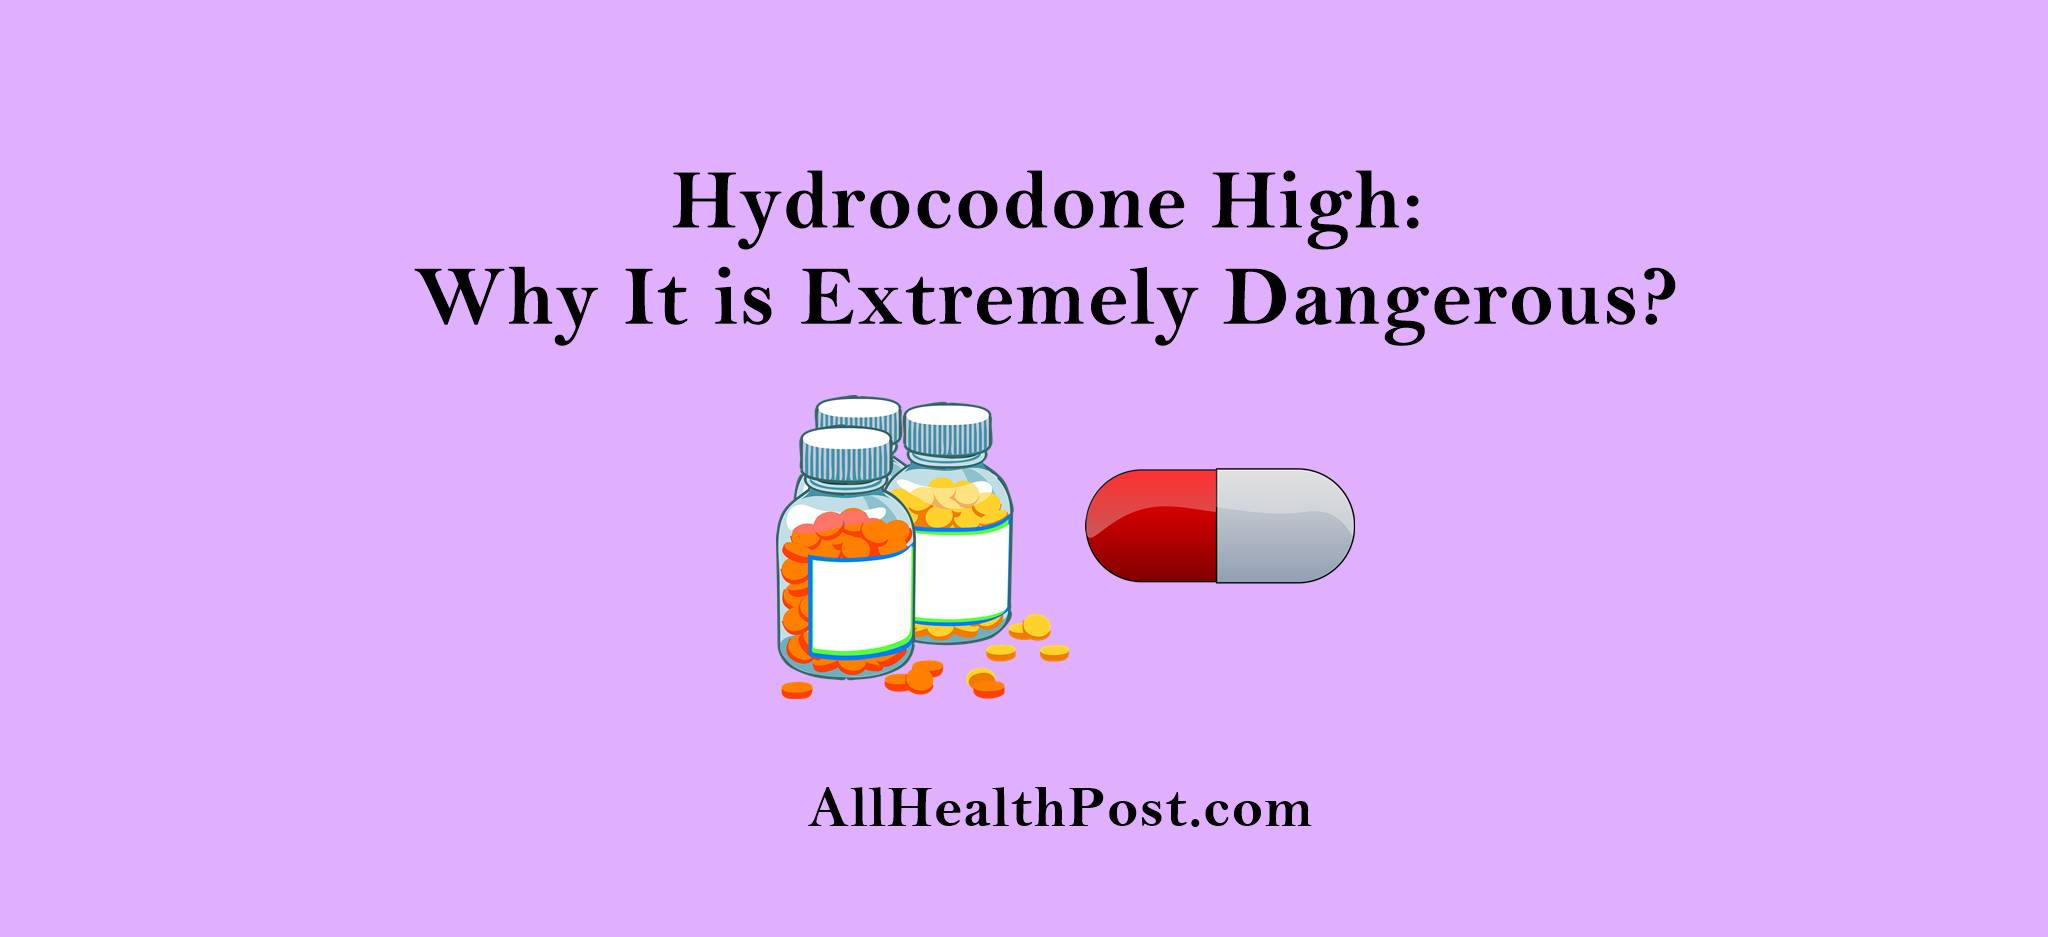 Hydrocodone High – Why It is Extremely Dangerous